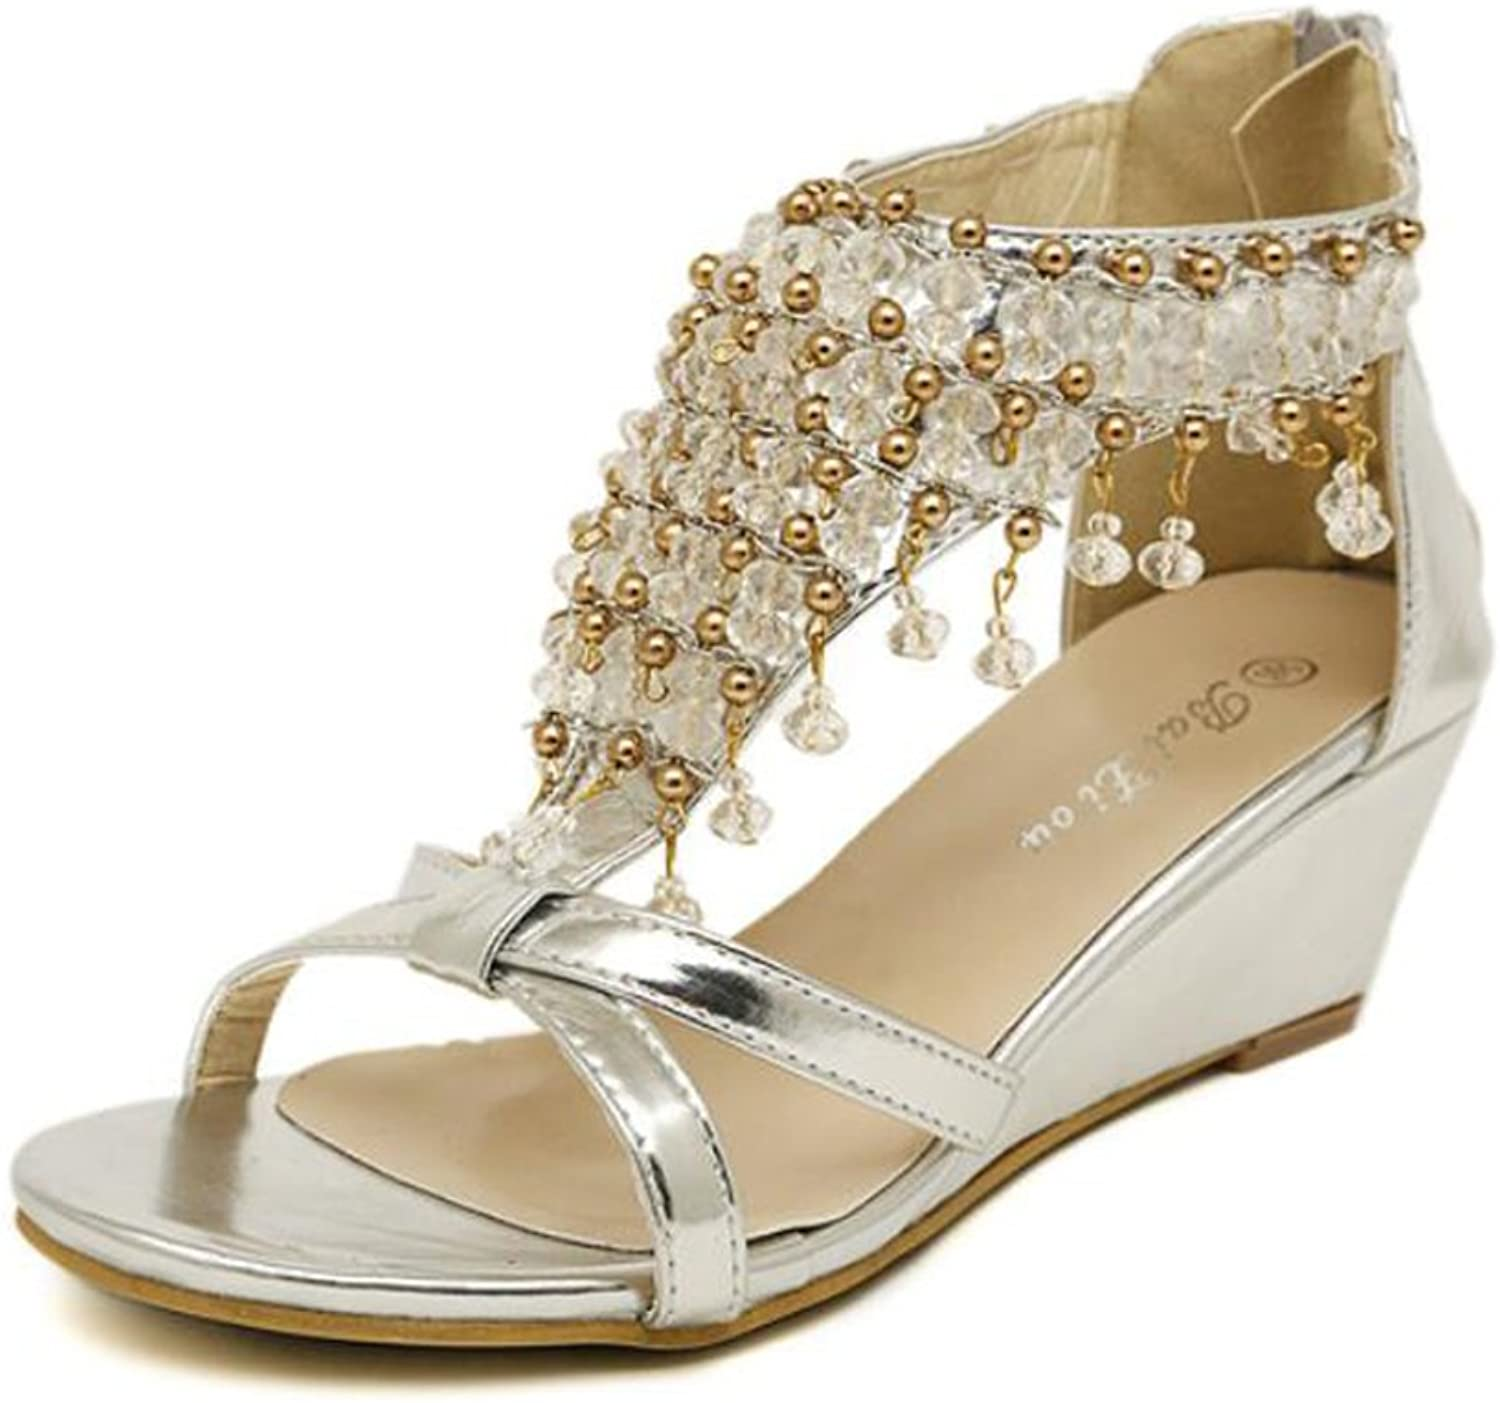 Women's shoes Leatherette Summer Platform Wedge Heel Crystal For Casual Silver gold Sandals